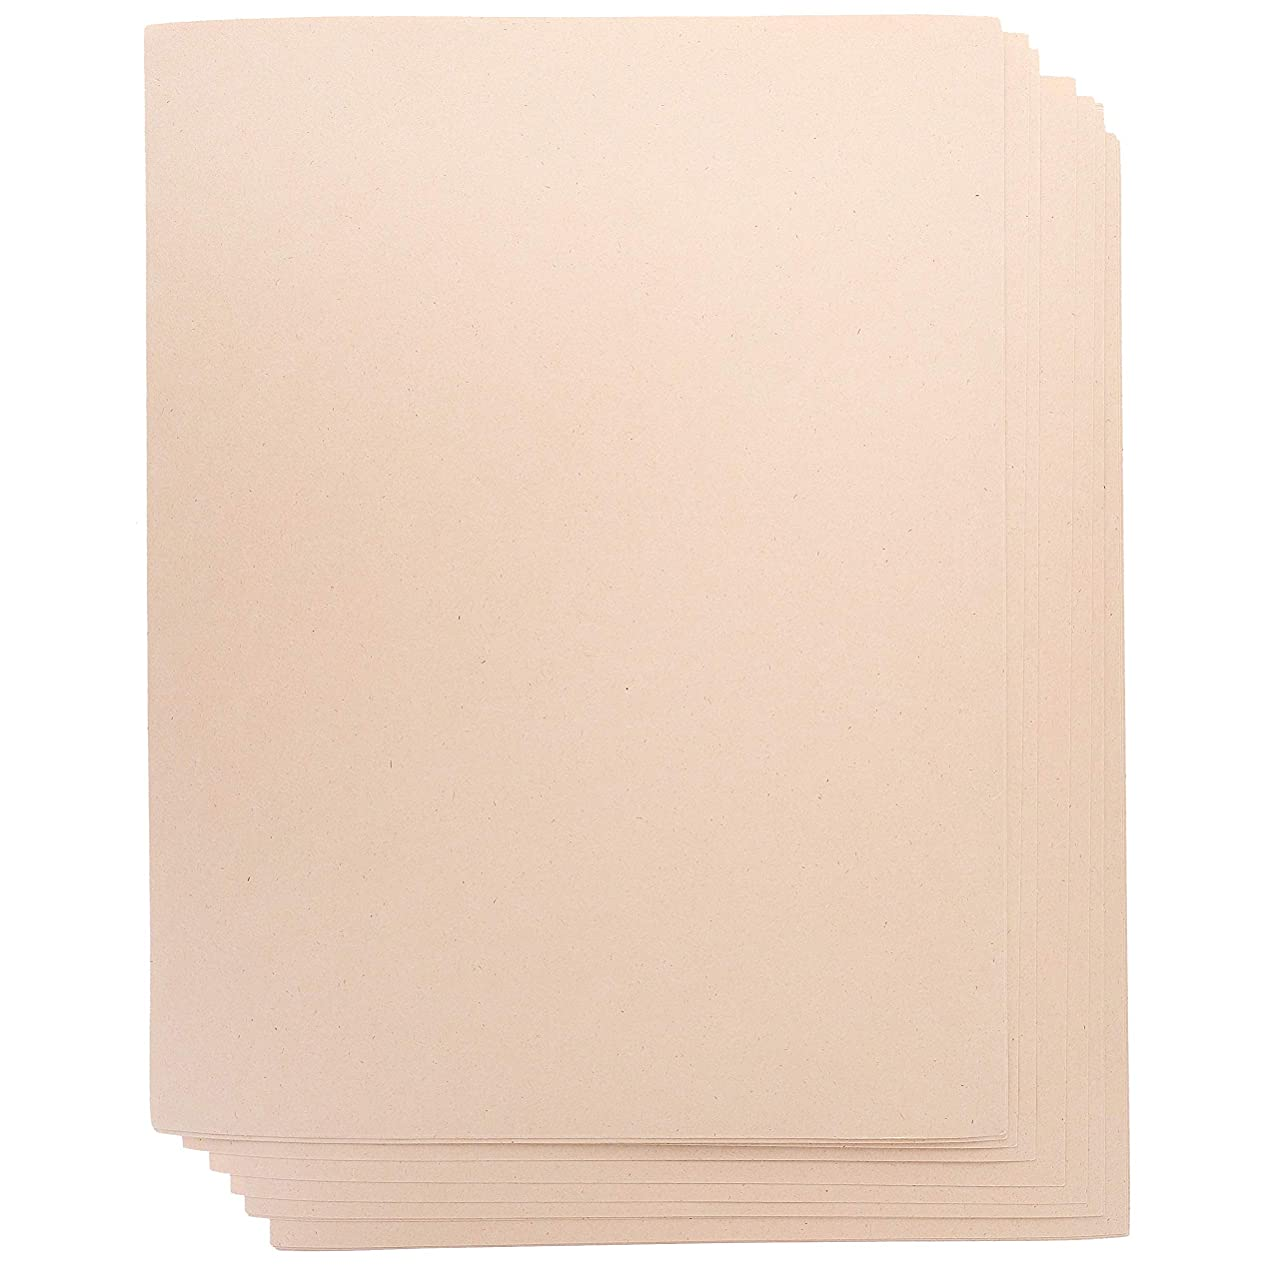 Juvale 100-Count Japanese Kraft Paper Stationery Sheets for Crafts, and Scrapbooking, Printer Friendly, Pastel Peach, 8.5 x 11 Inches